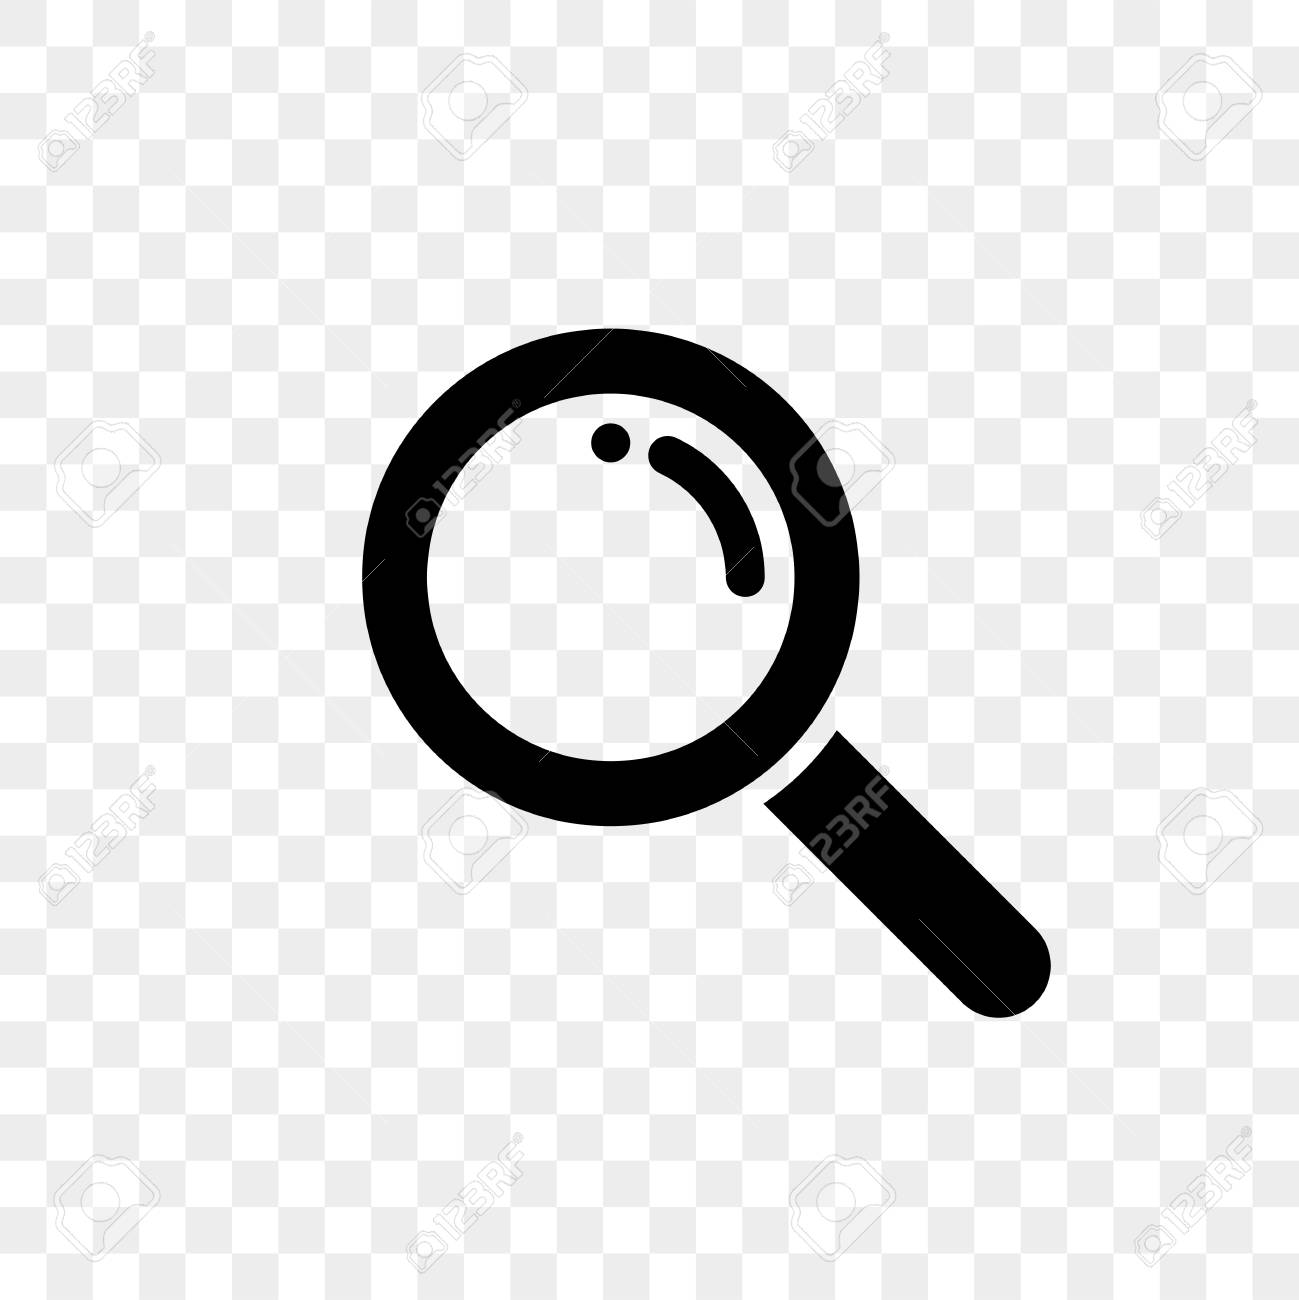 Search icon of vector magnifier for internet search engine or